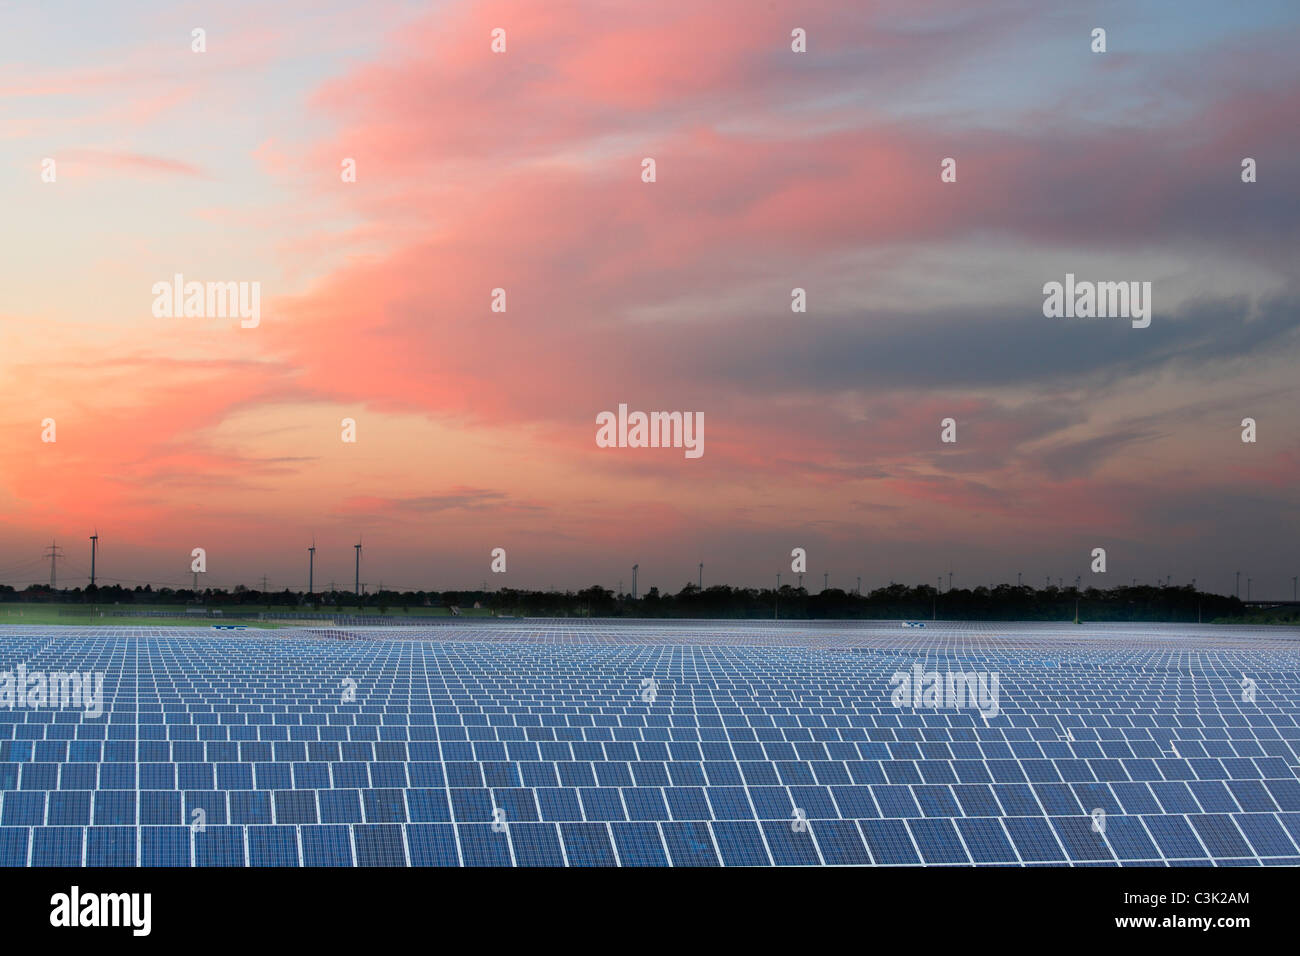 photovoltaic solar power plant - Stock Image